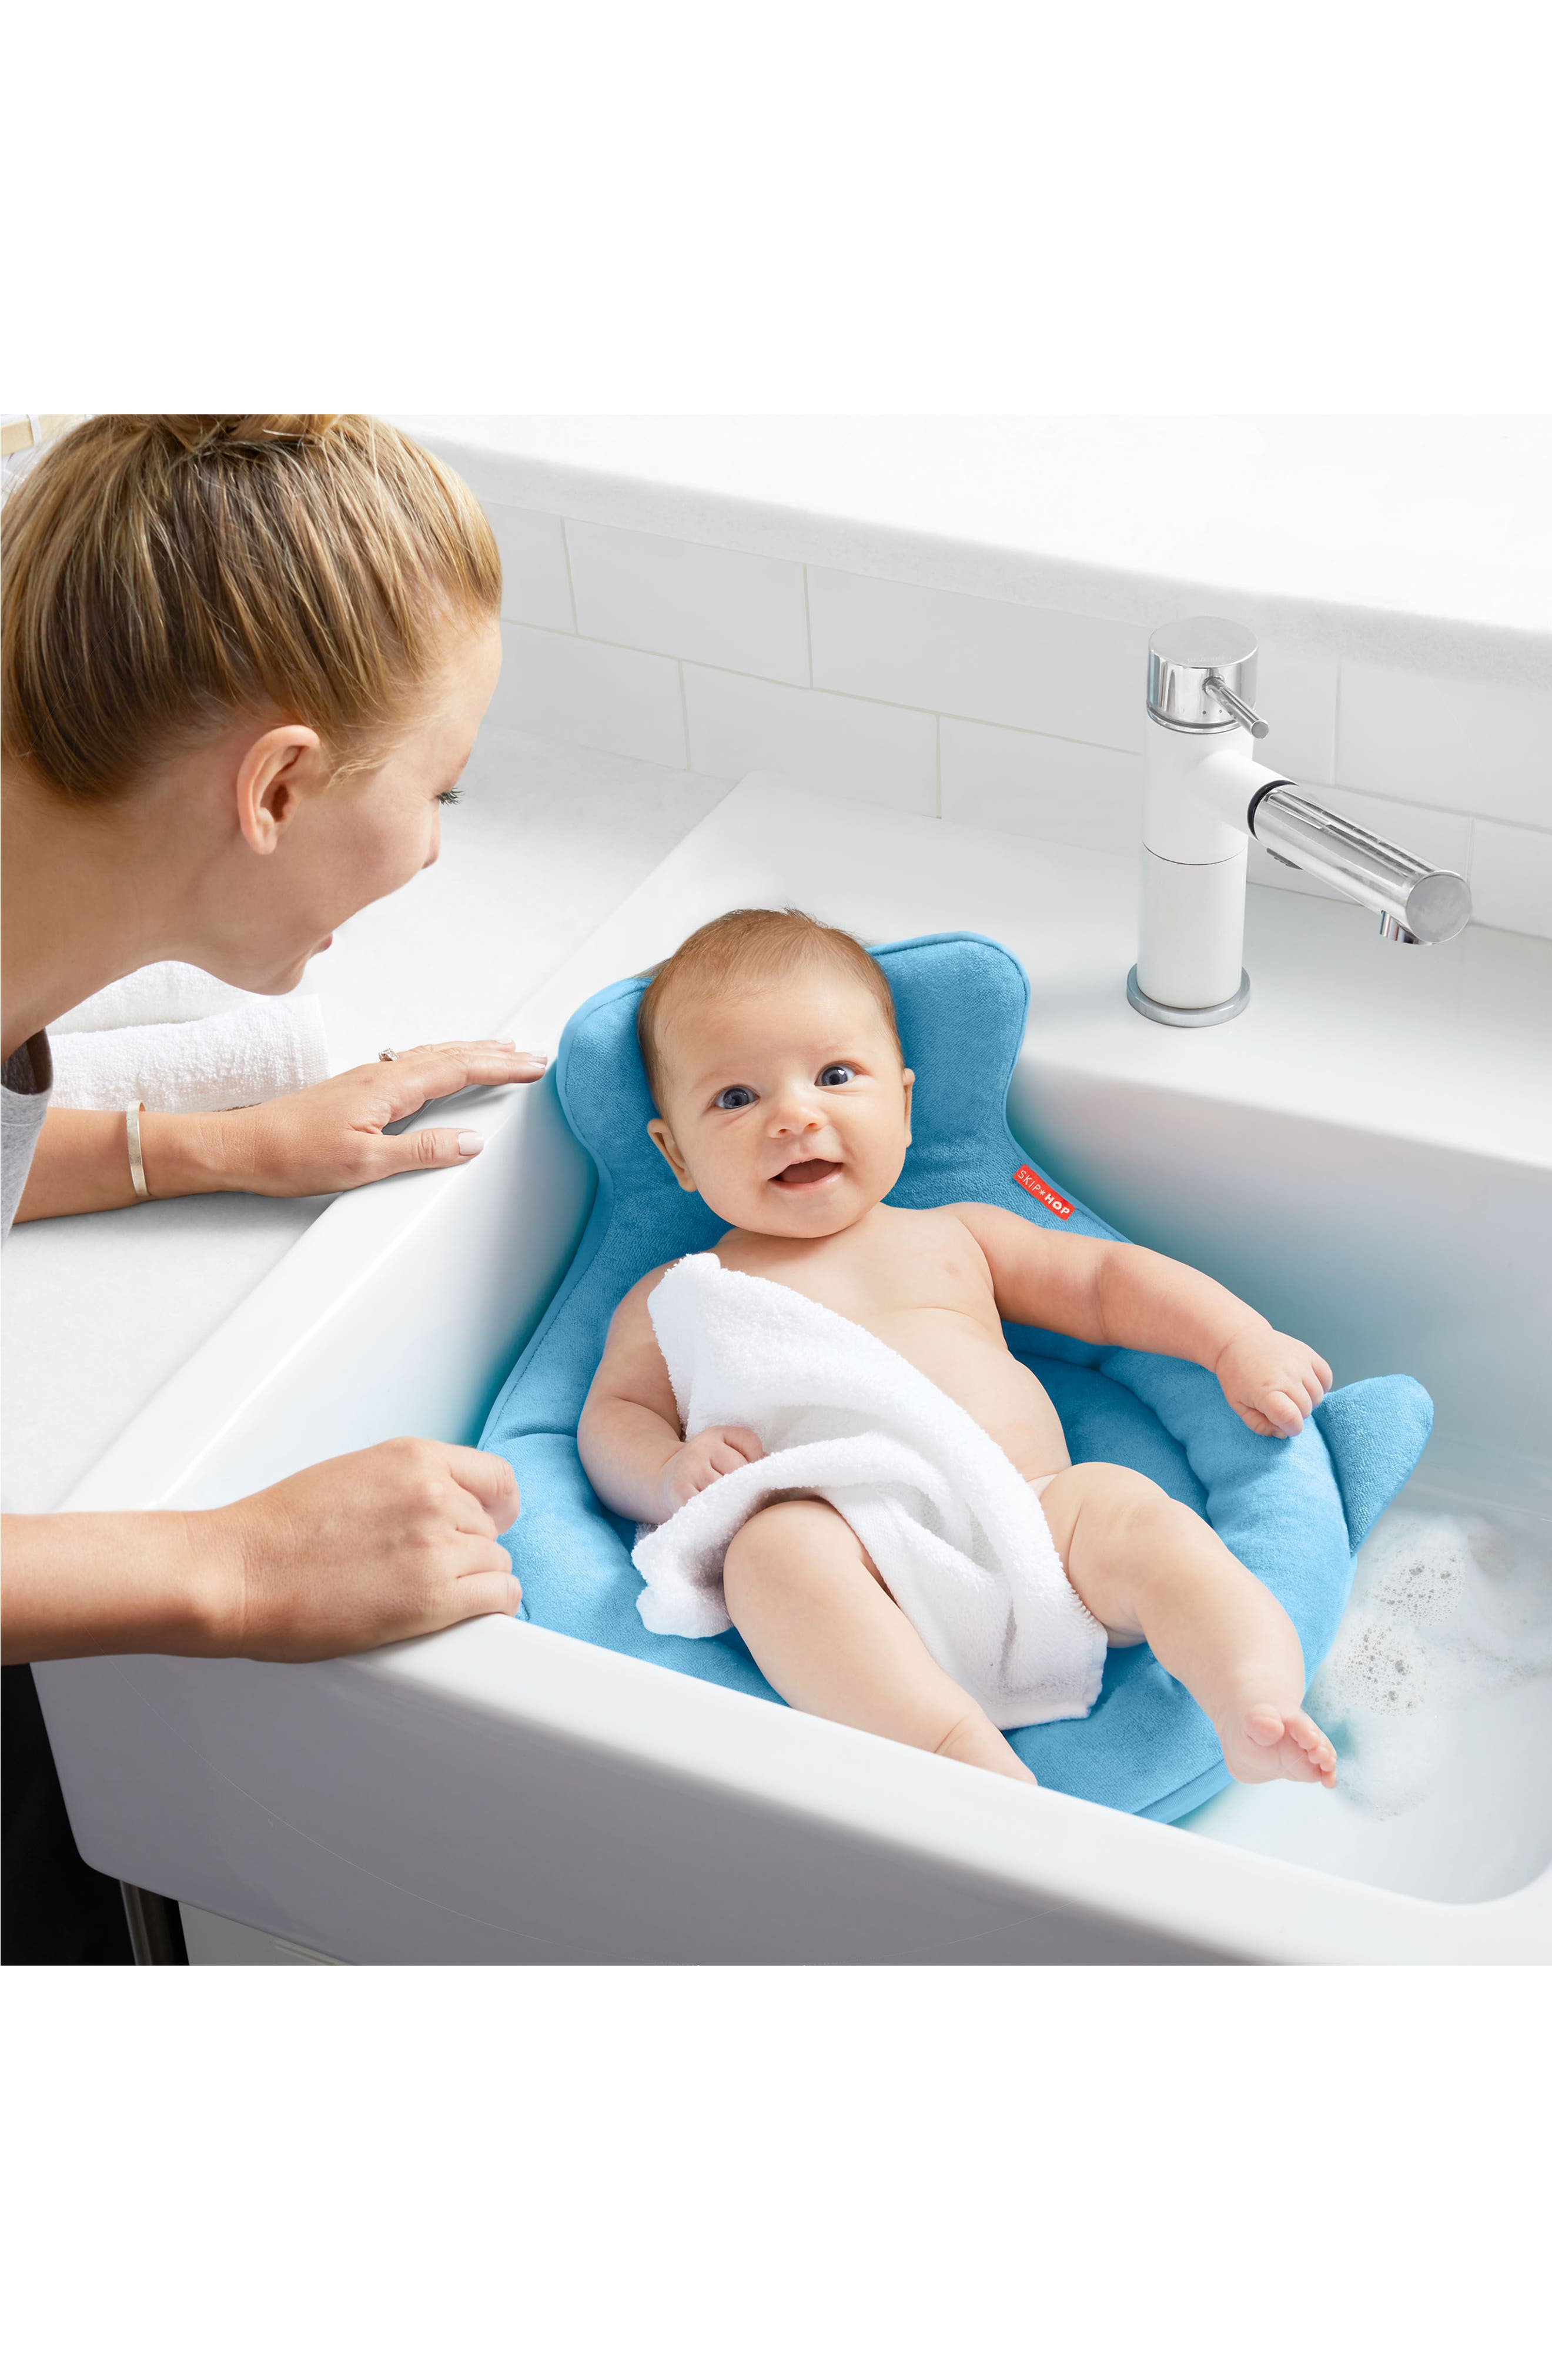 Moby Softspot Sink Bather Inset,                             Alternate thumbnail 2, color,                             Moby